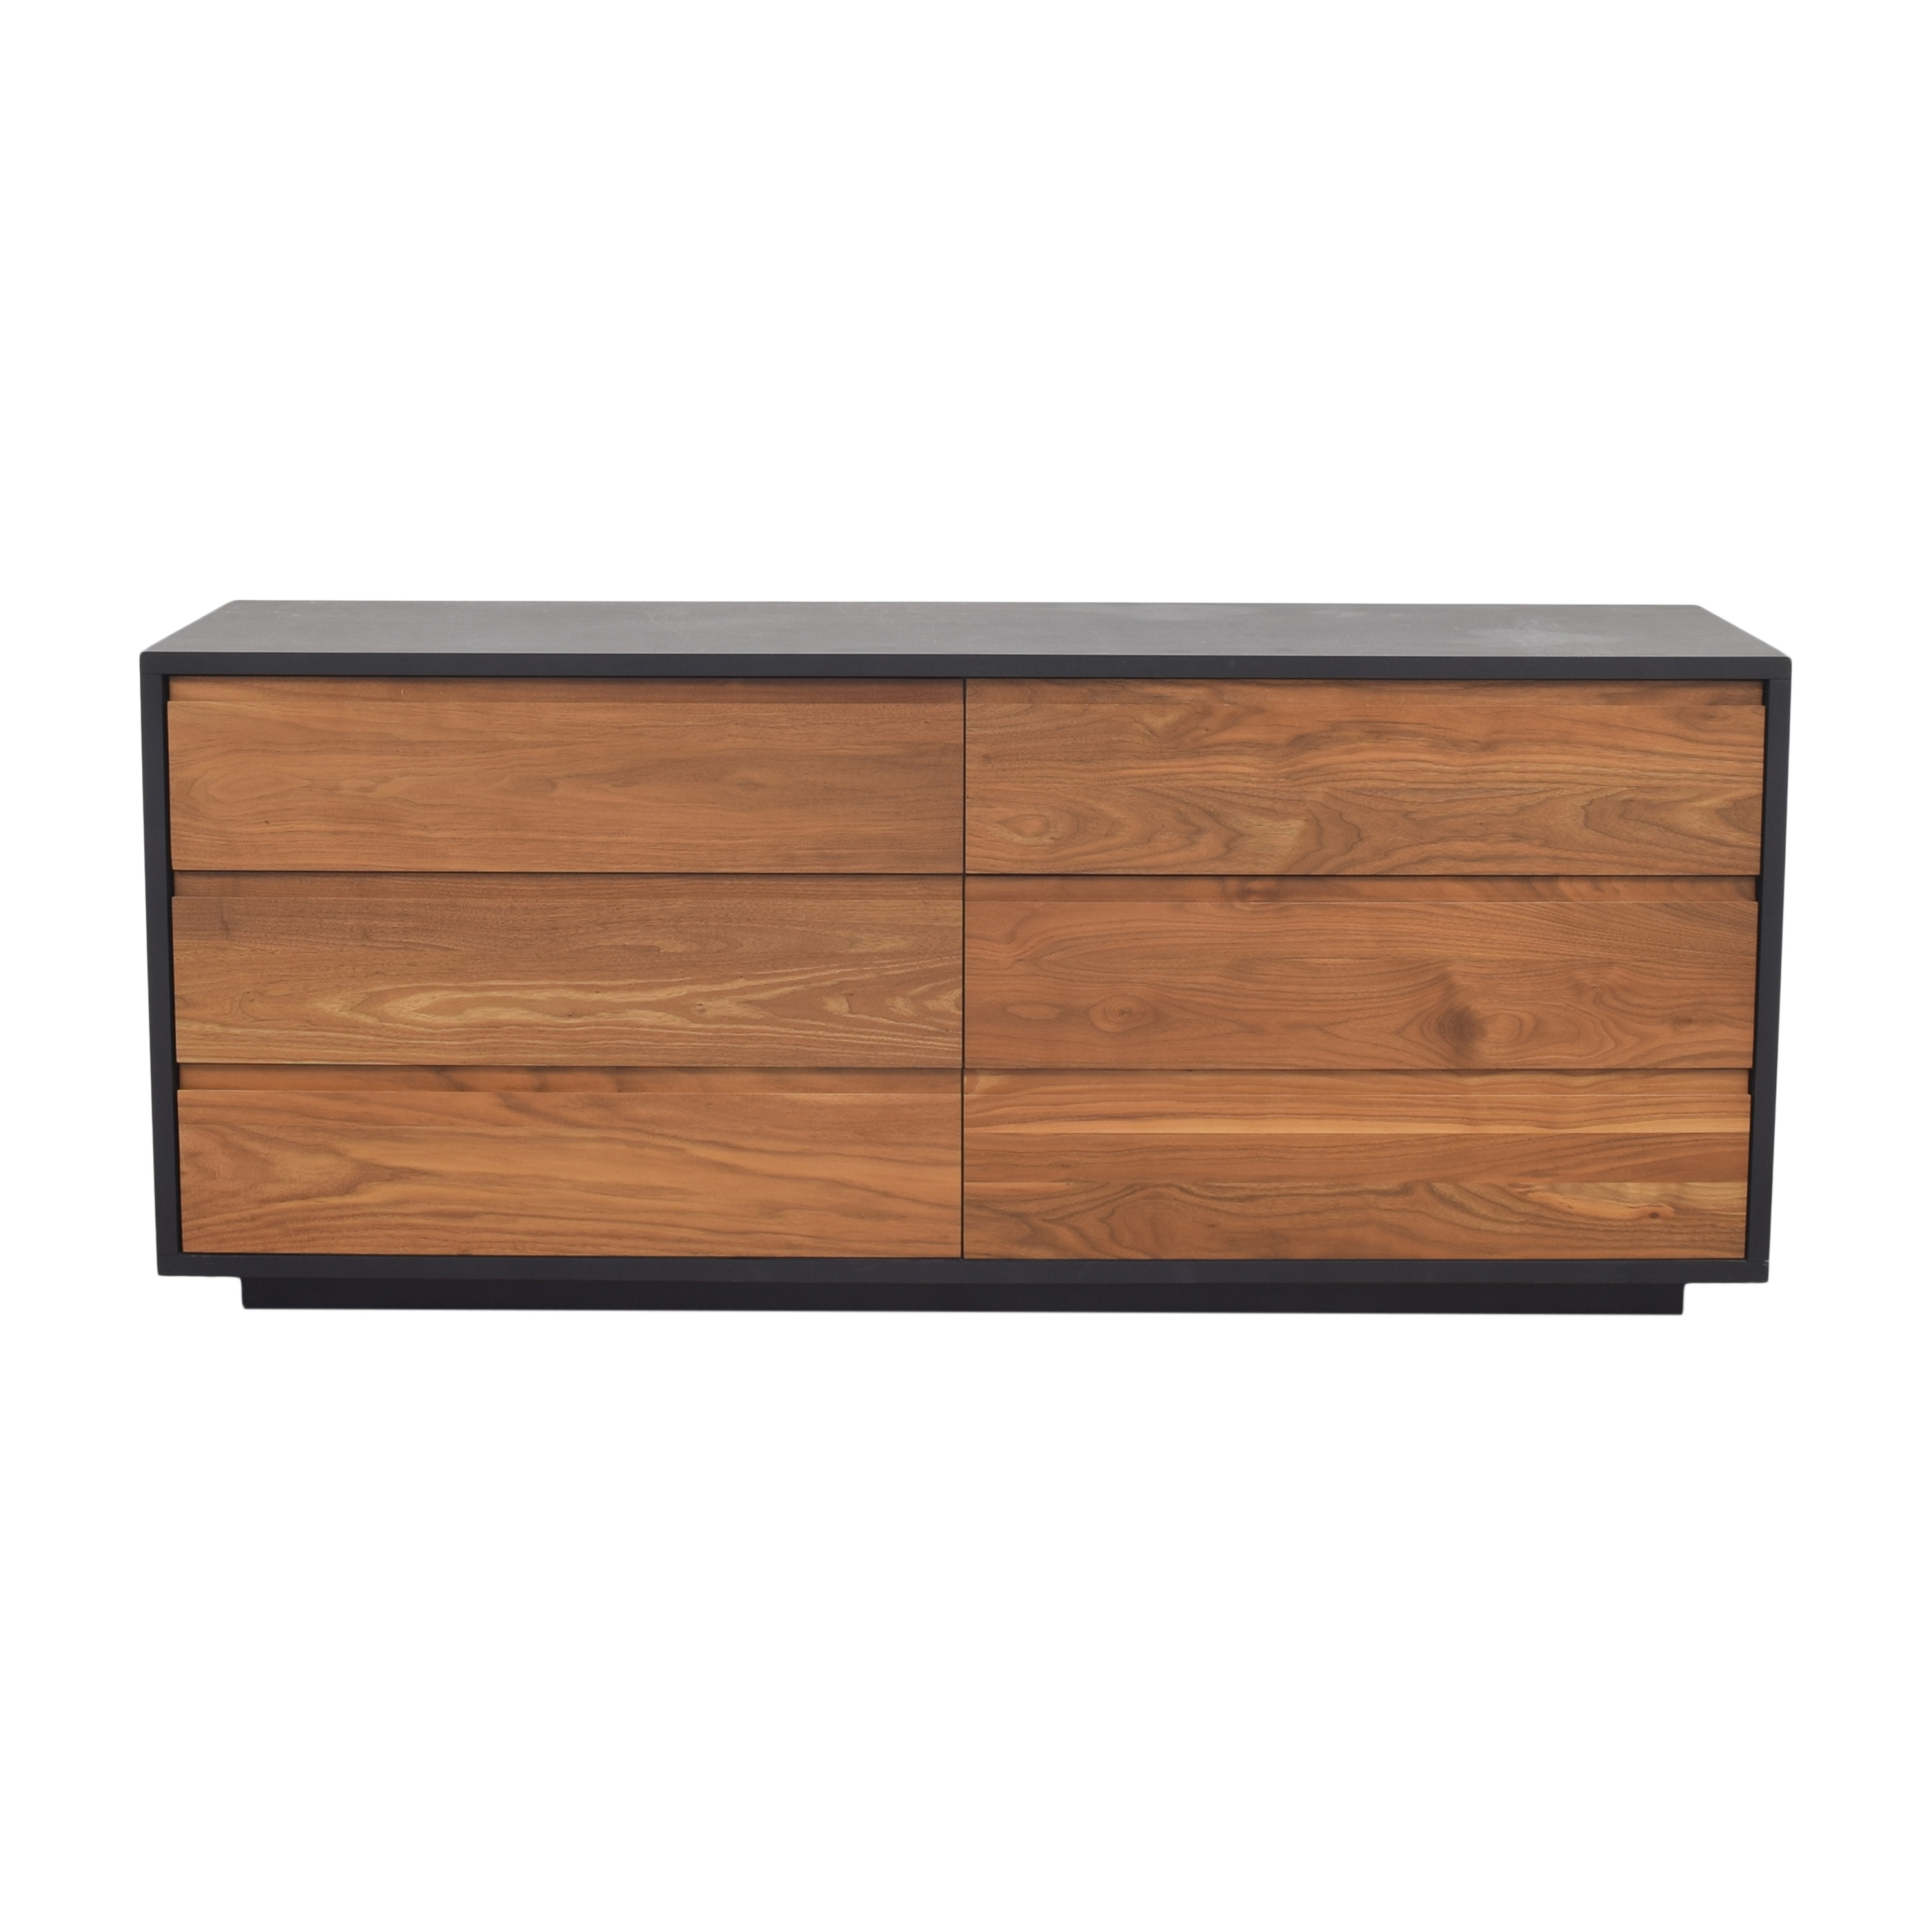 Room & Board Six Drawer Dresser sale